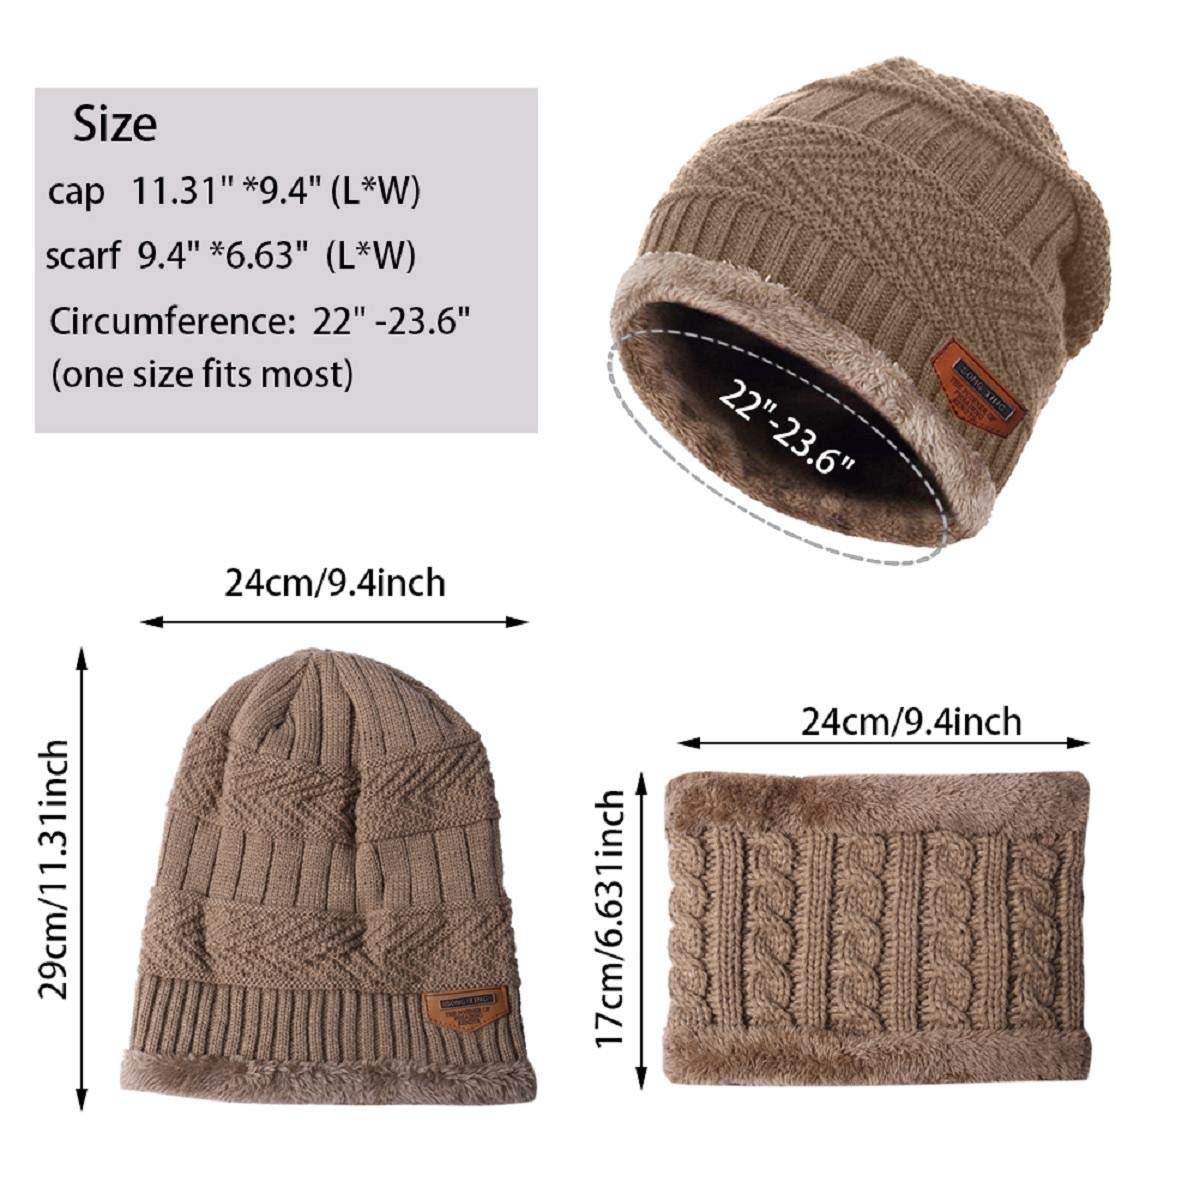 Abollria Beanie and Scarf Set for Men Women Knit Hats Skull Caps